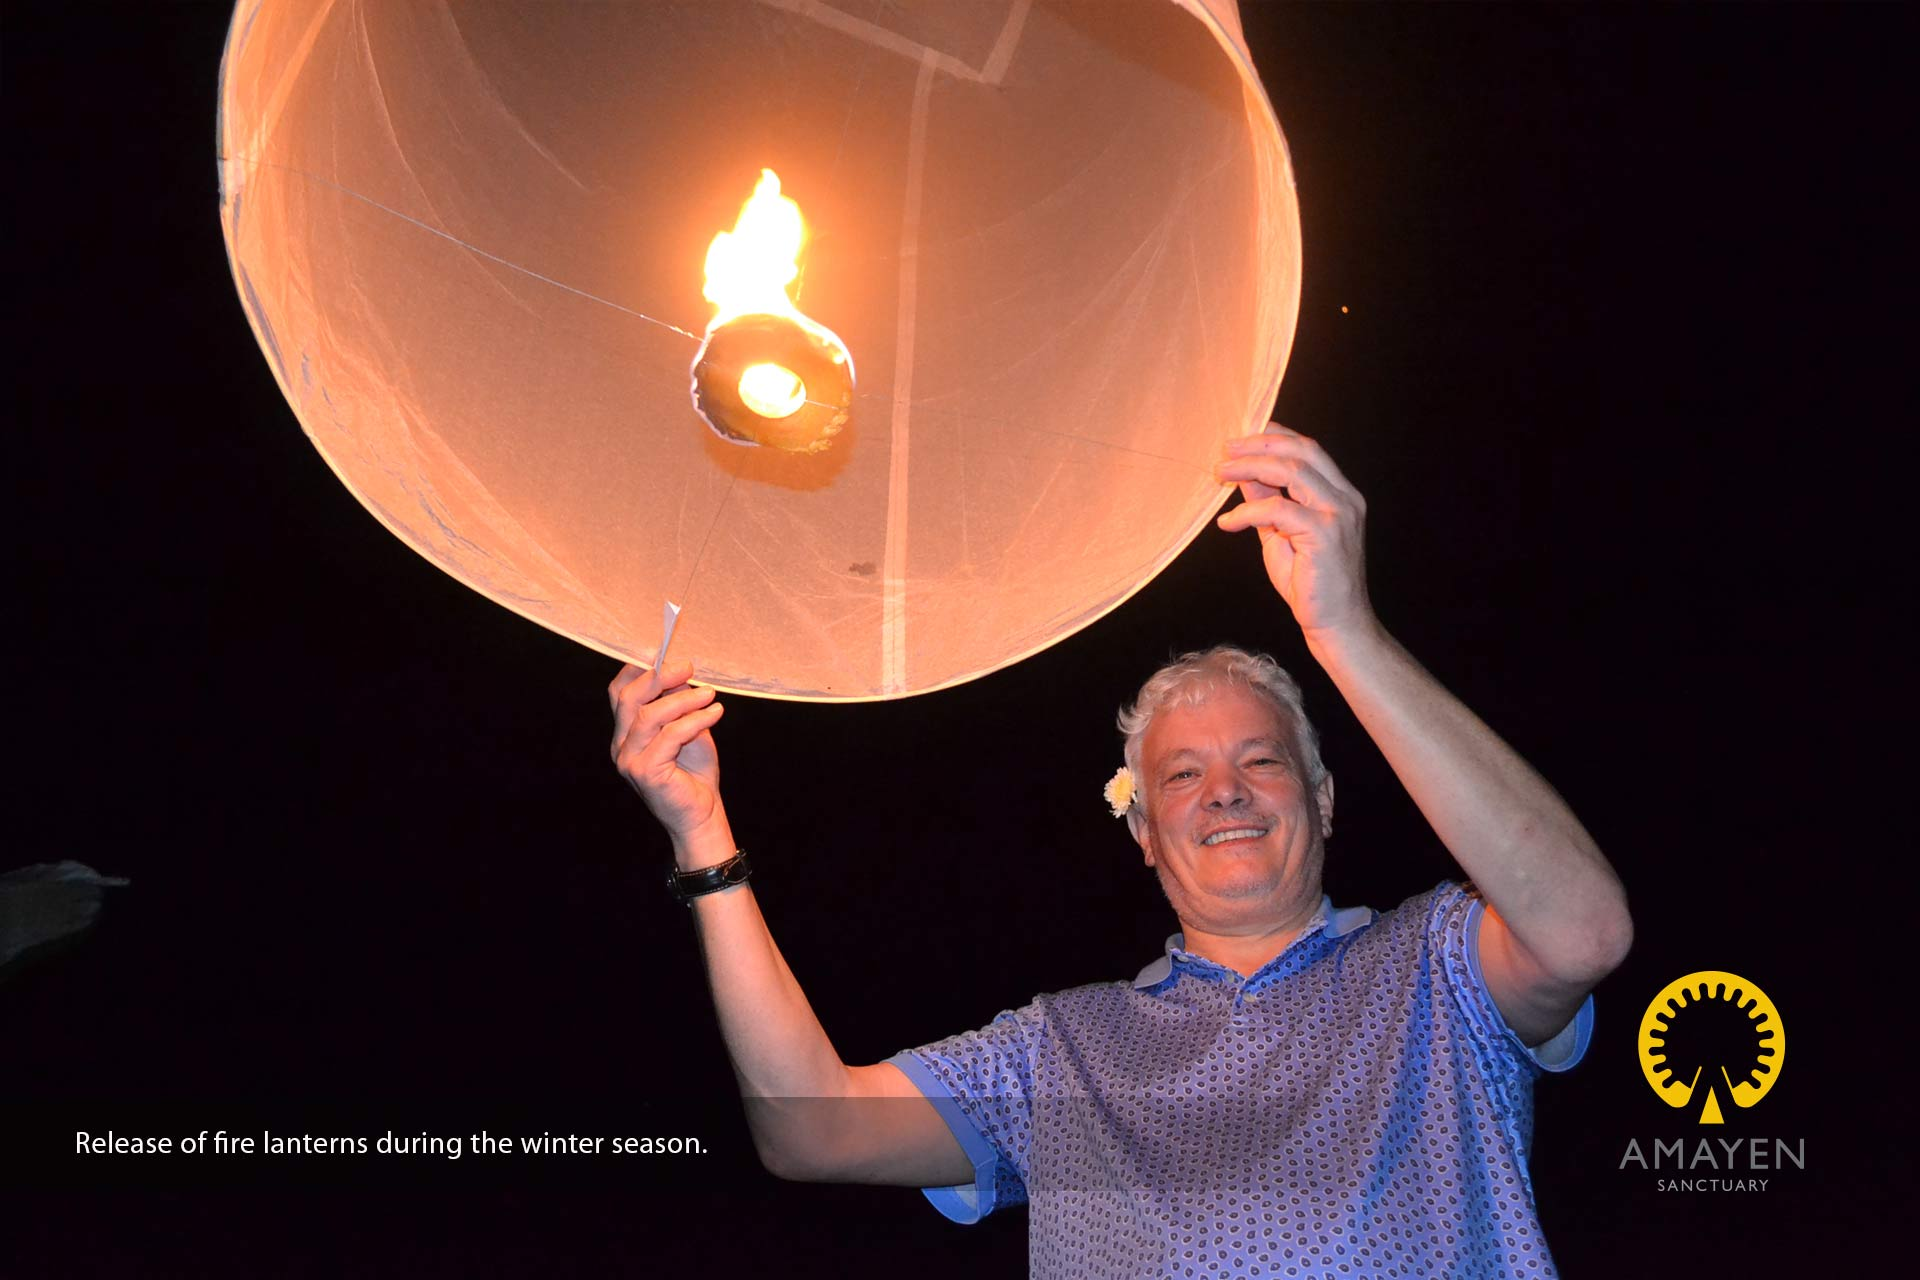 mindful-breathing-fire-lanterns-meditation-retreat-chiang-mai-thailand-2019